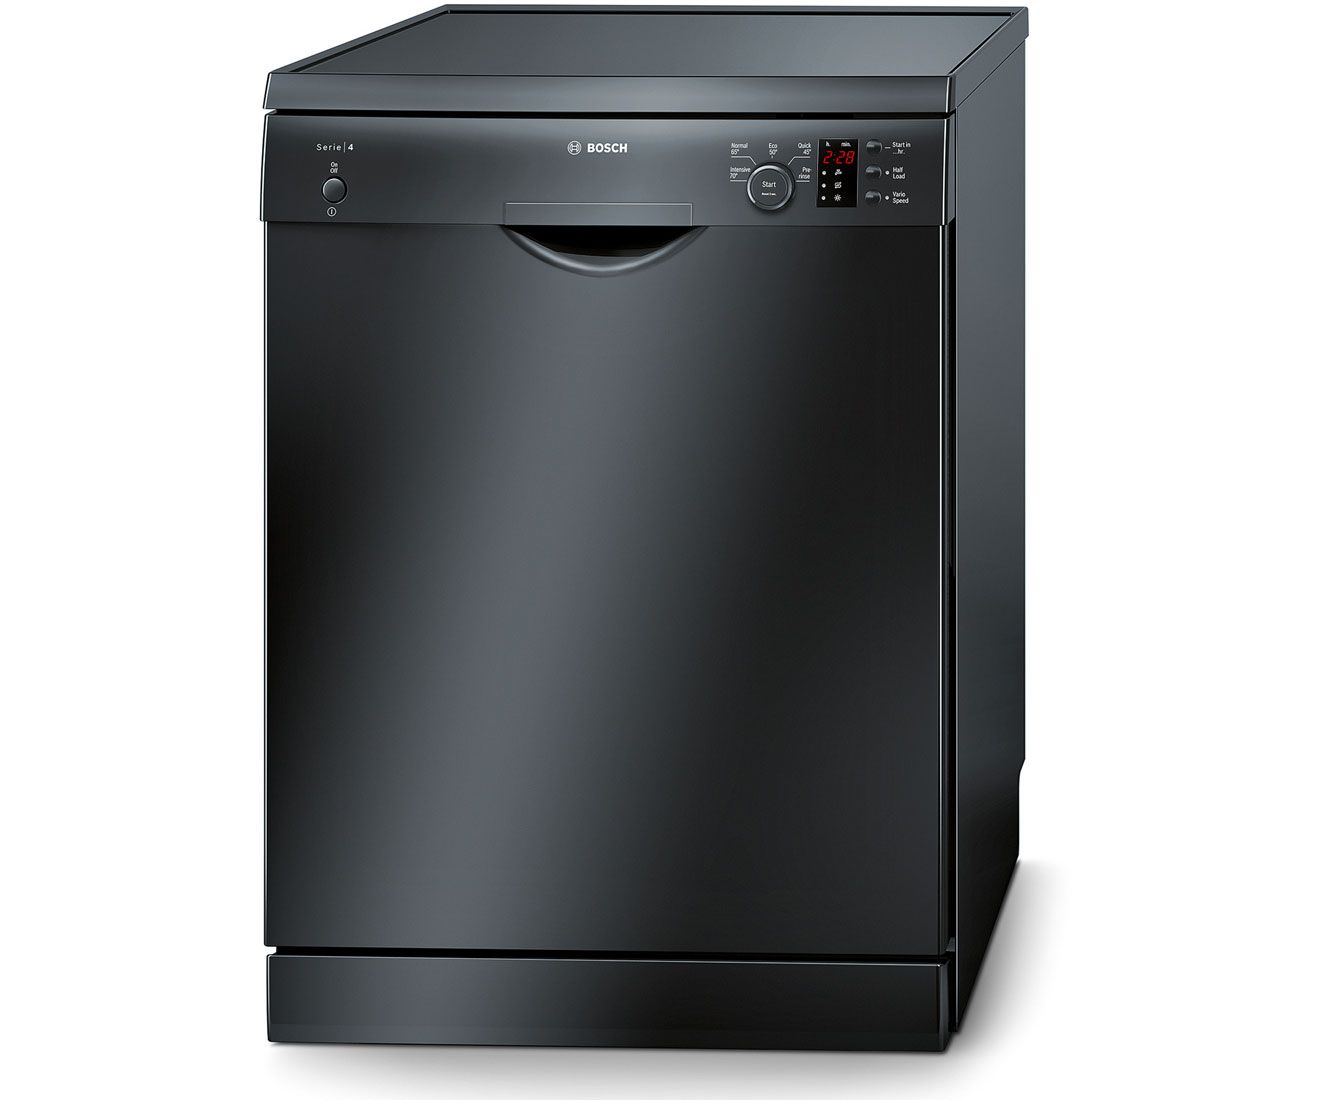 Bosch Serie 4 Sms50c26uk Standard Dishwasher Black Black